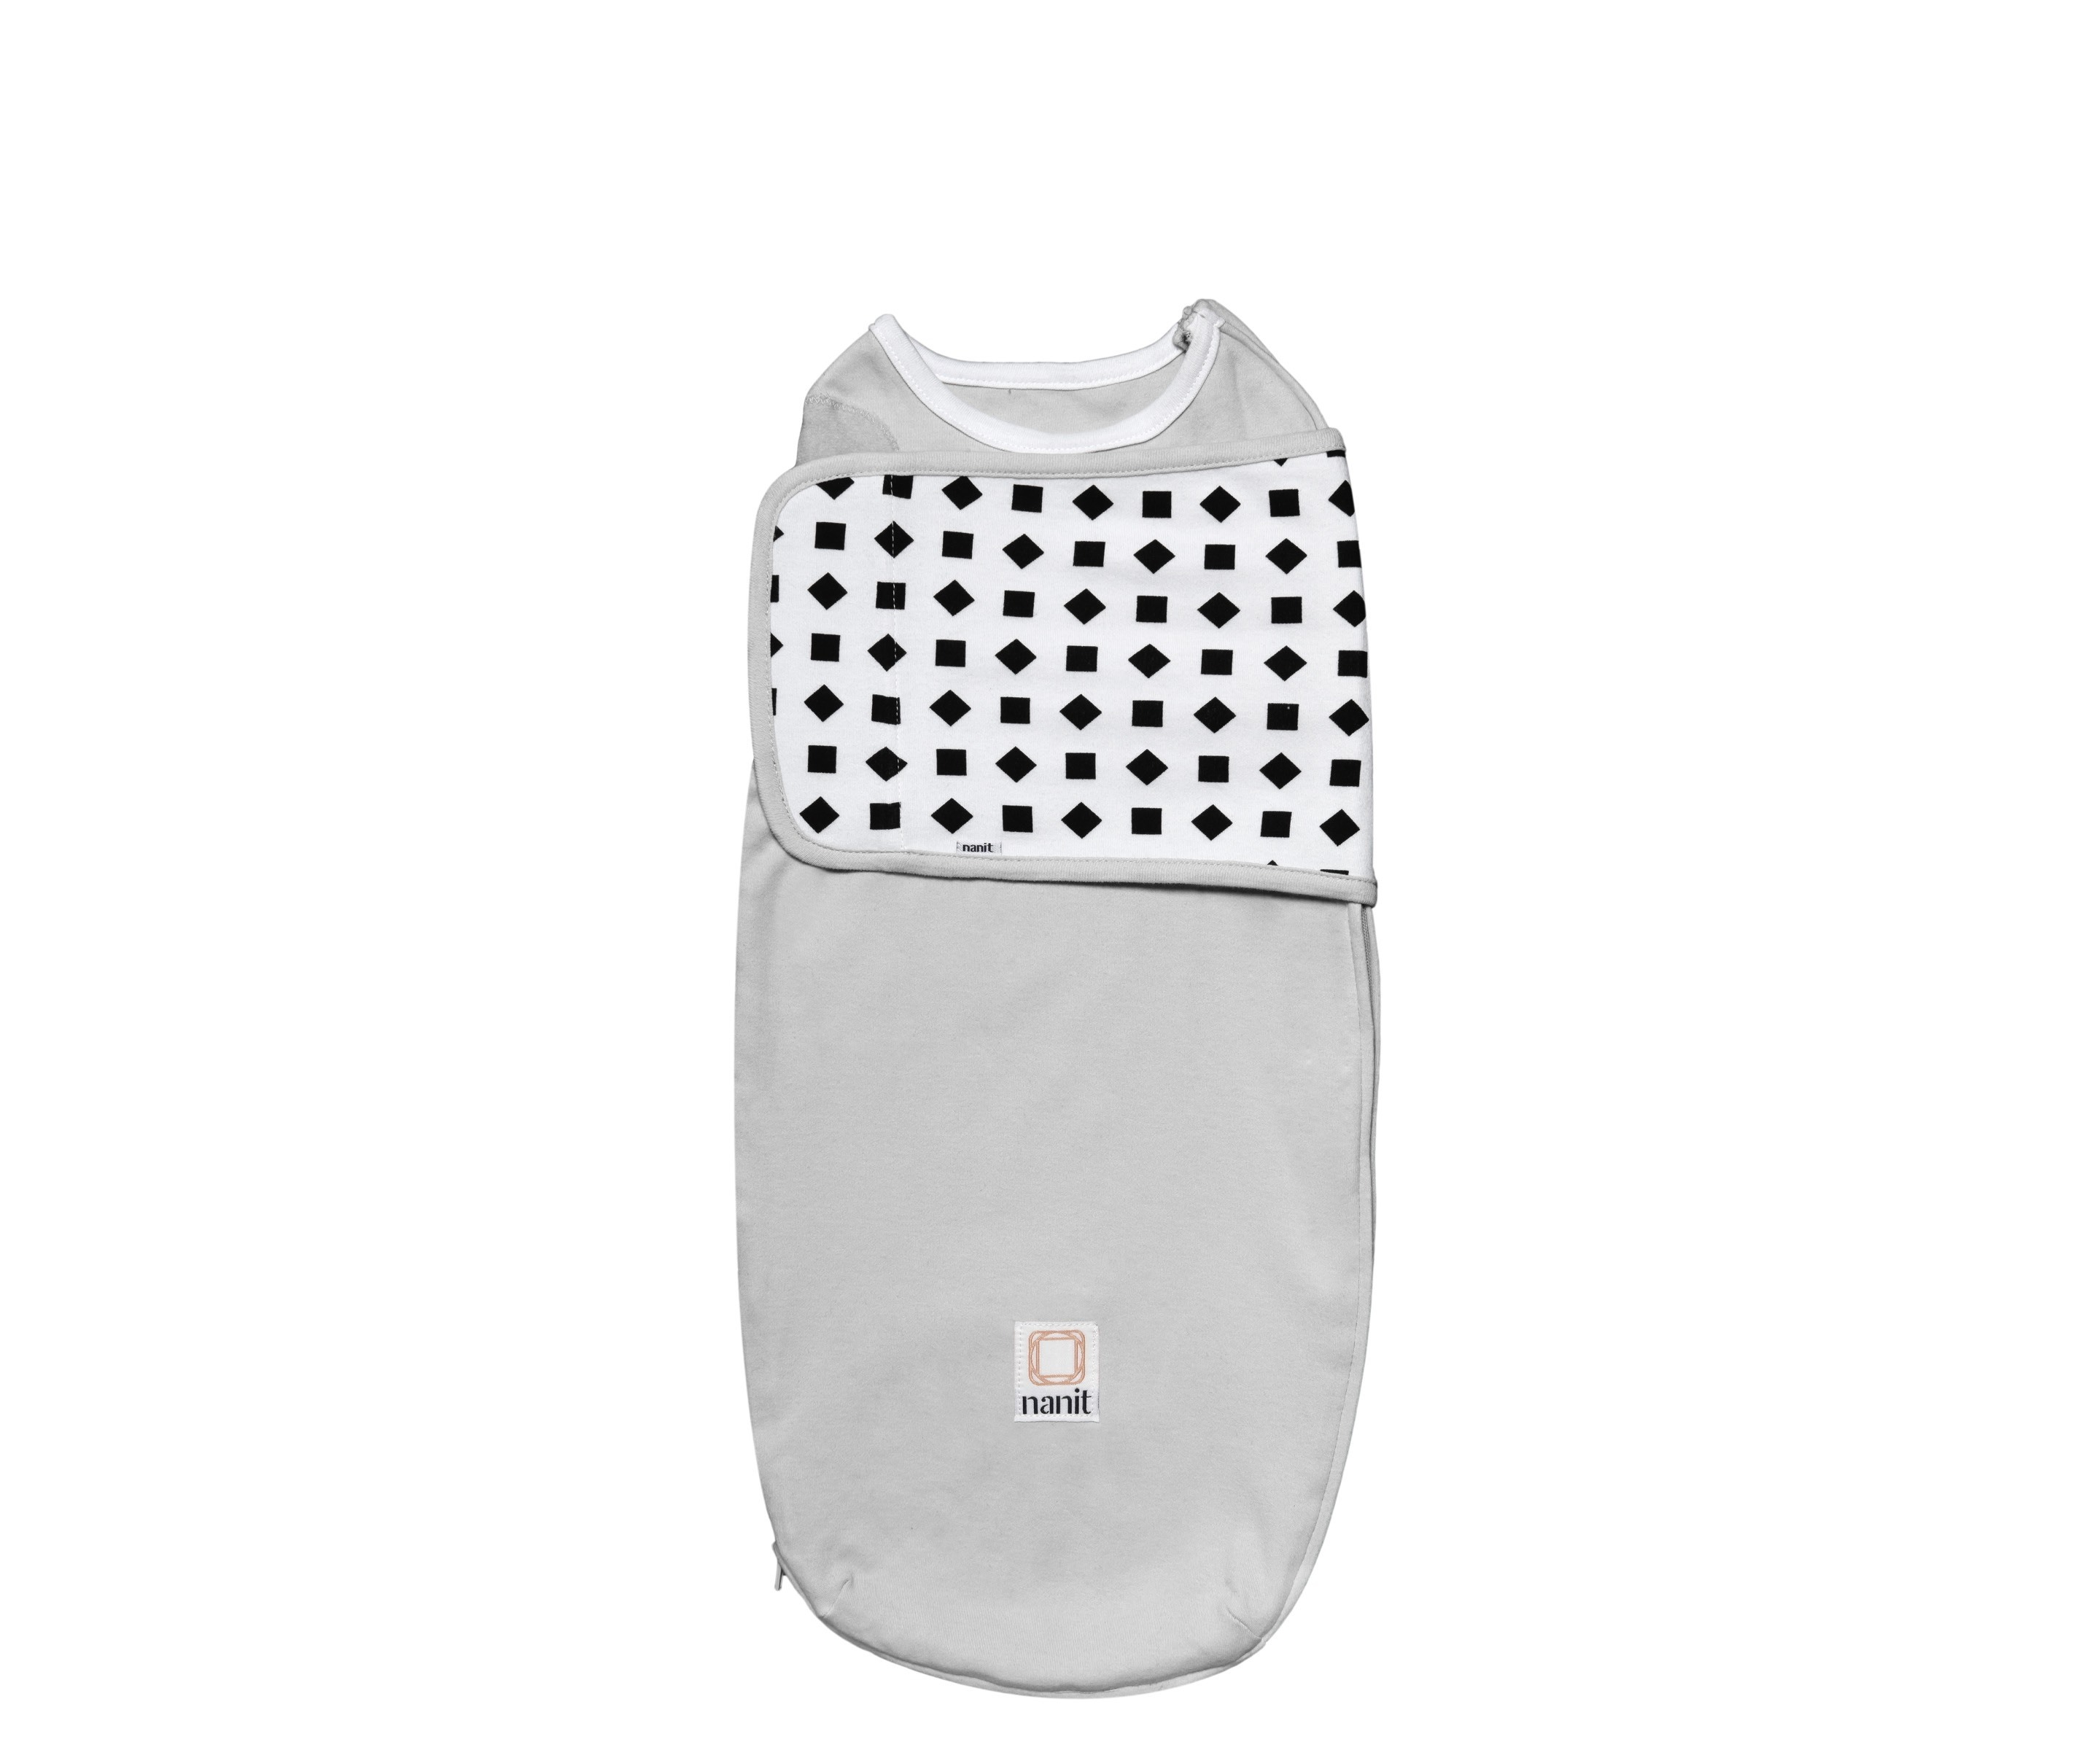 Swaddle pdp panel 06